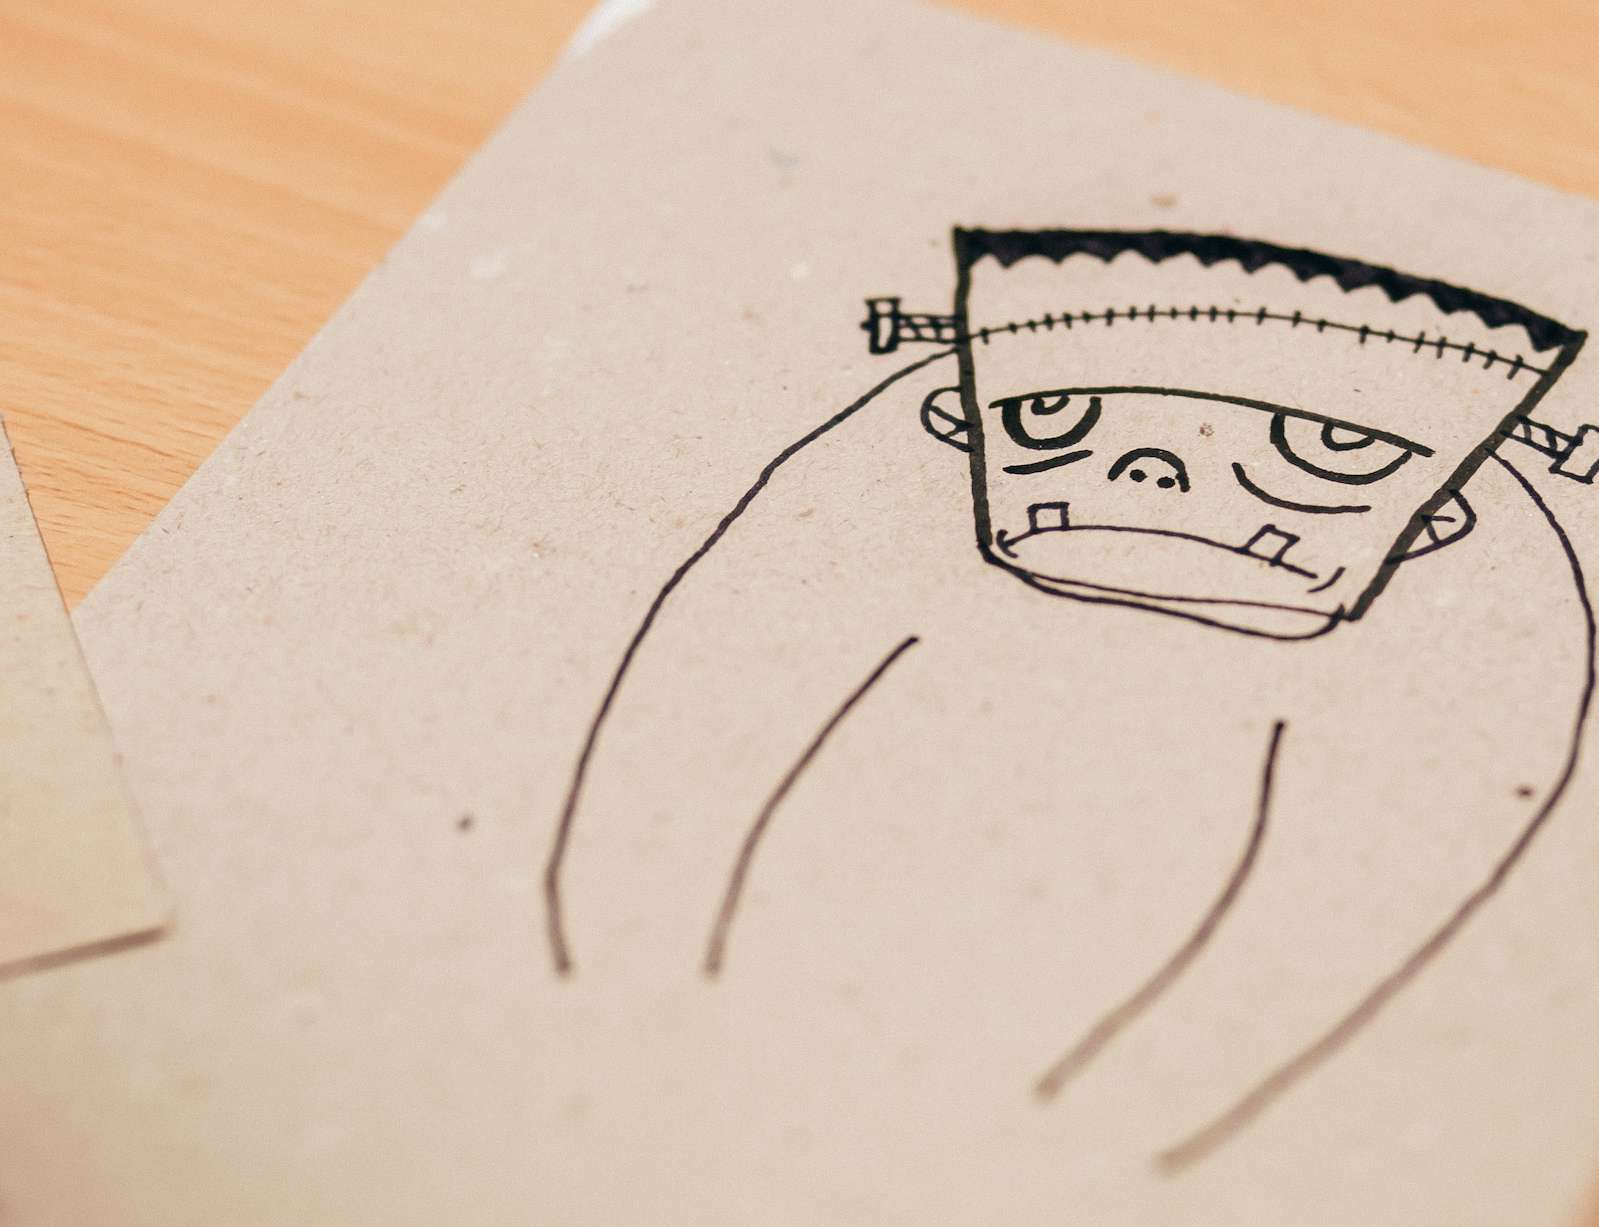 Does your marketing suffer from Frankenstein syndrome?